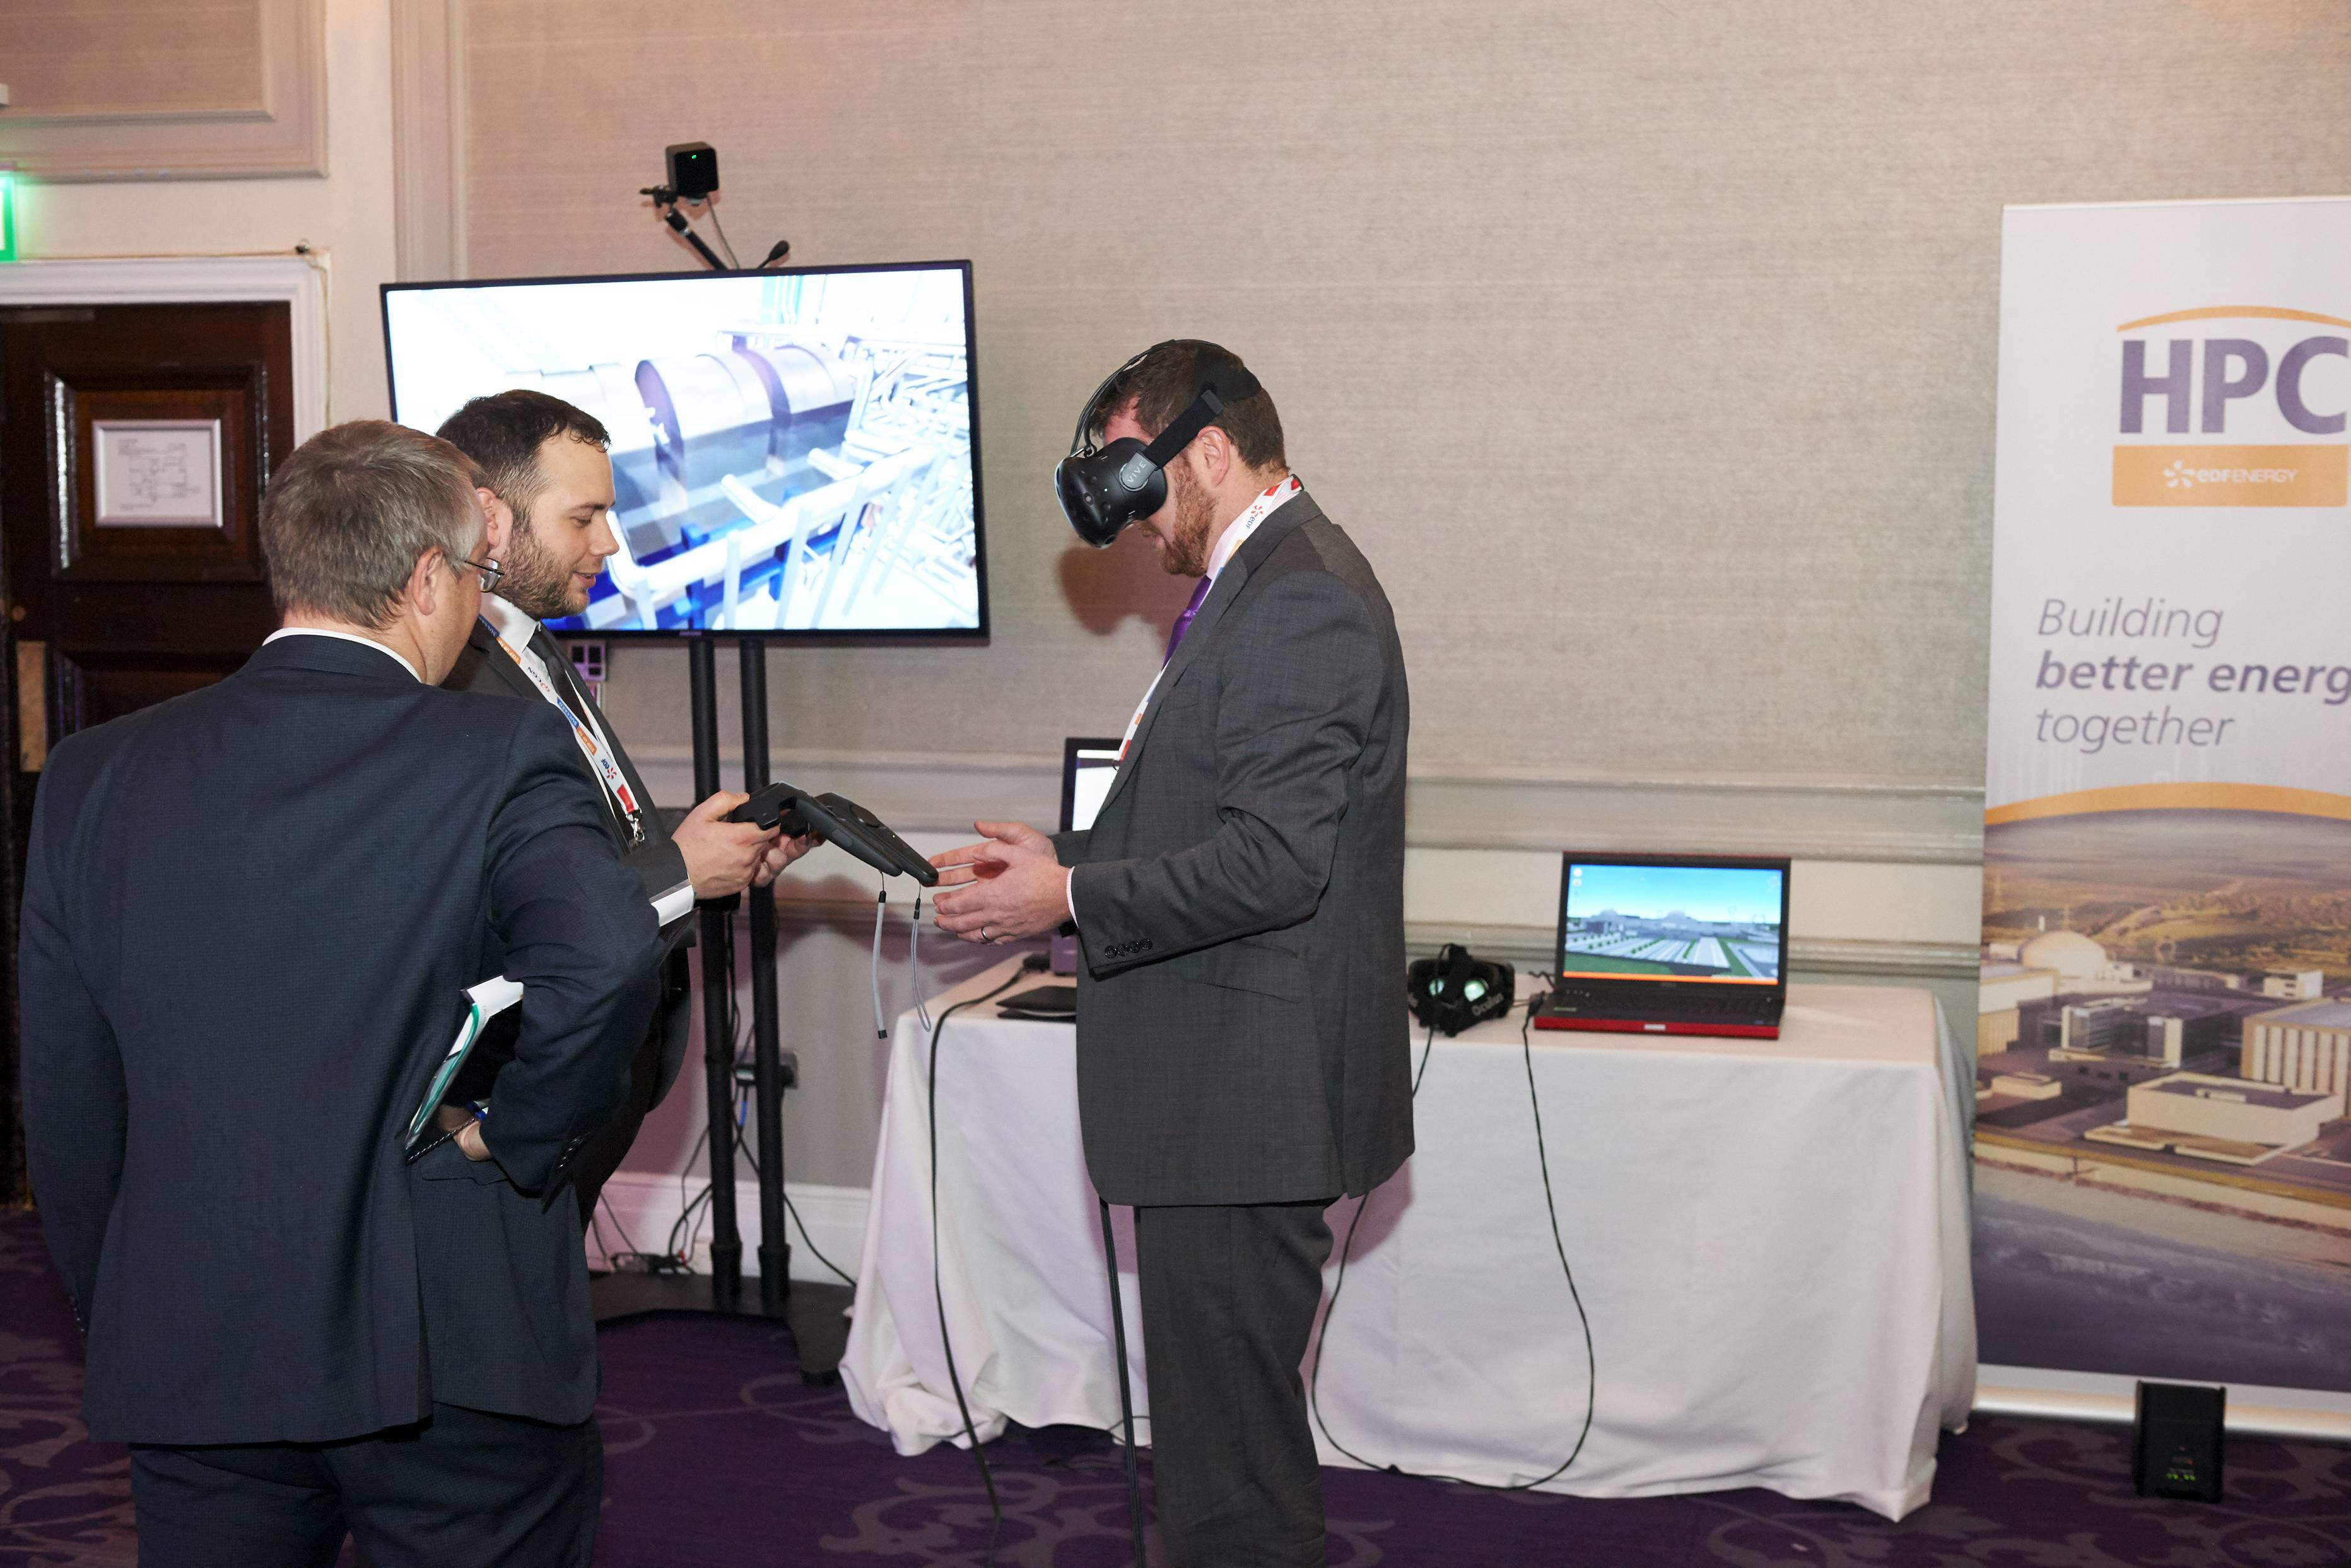 VR headset at Hinkley Point C event - October 2016